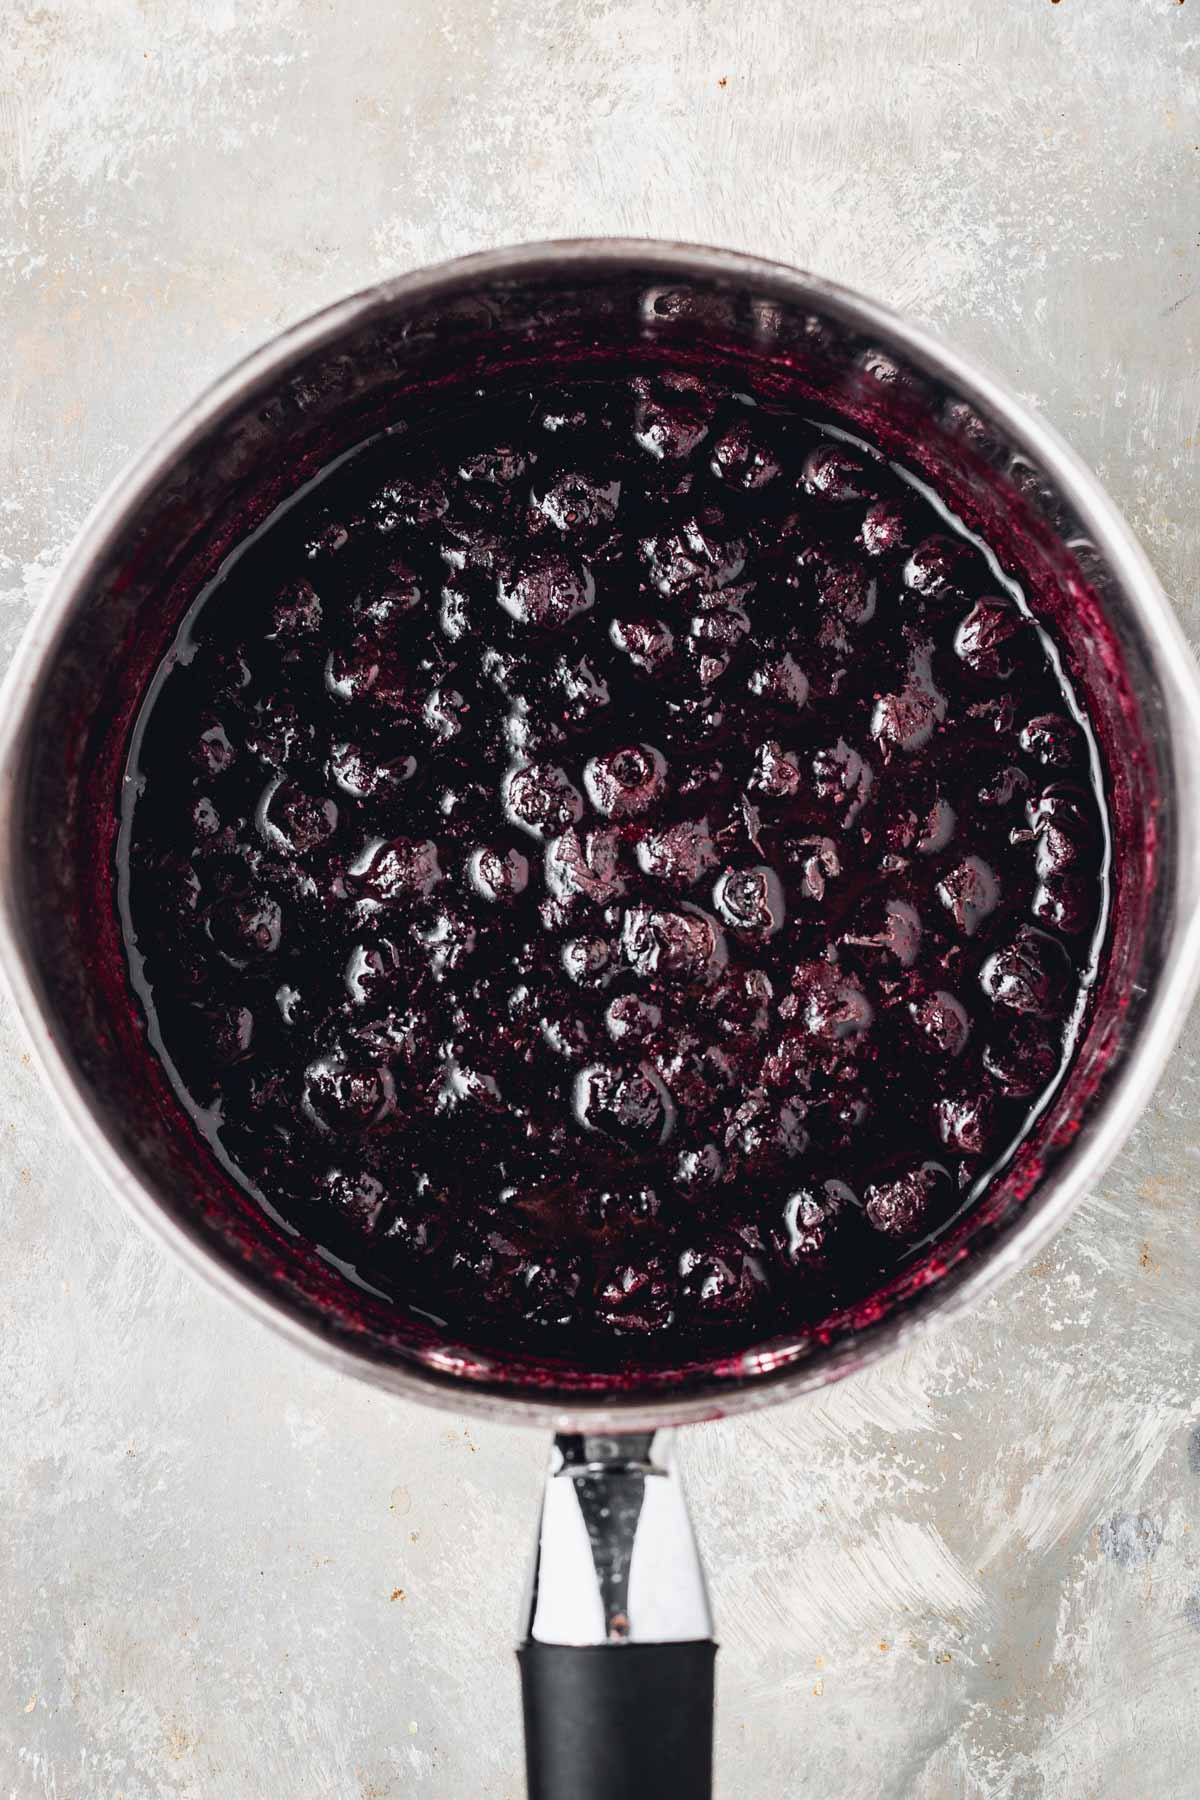 An overhead view of a small pan filled with blueberries.